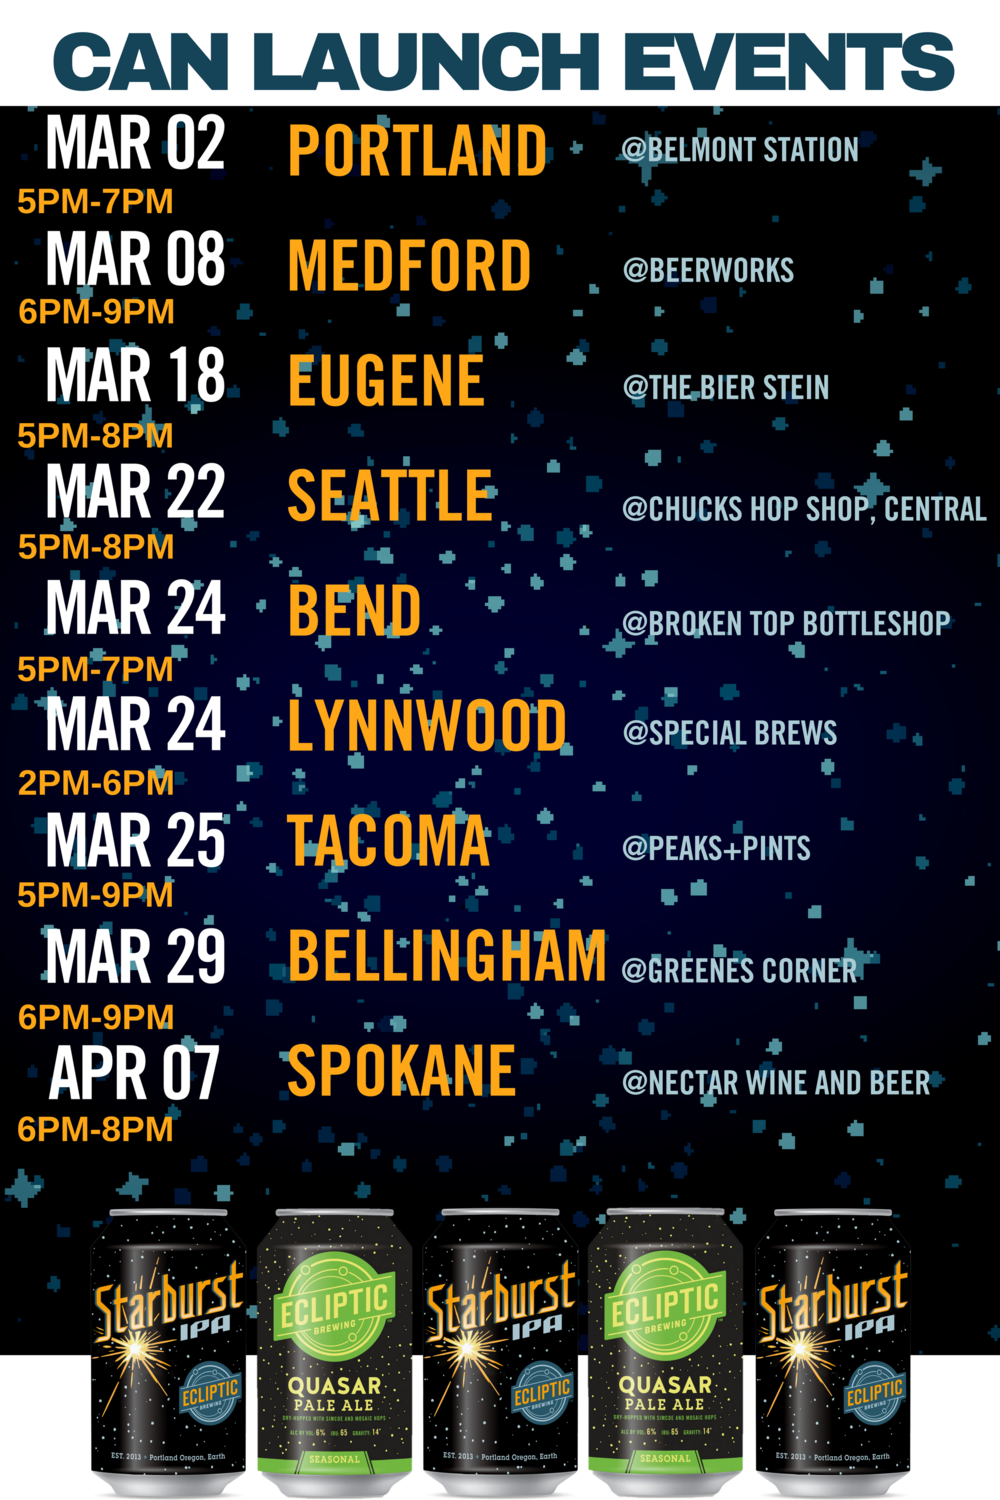 image courtesy Ecliptic Brewing. Click image for more dates and locations